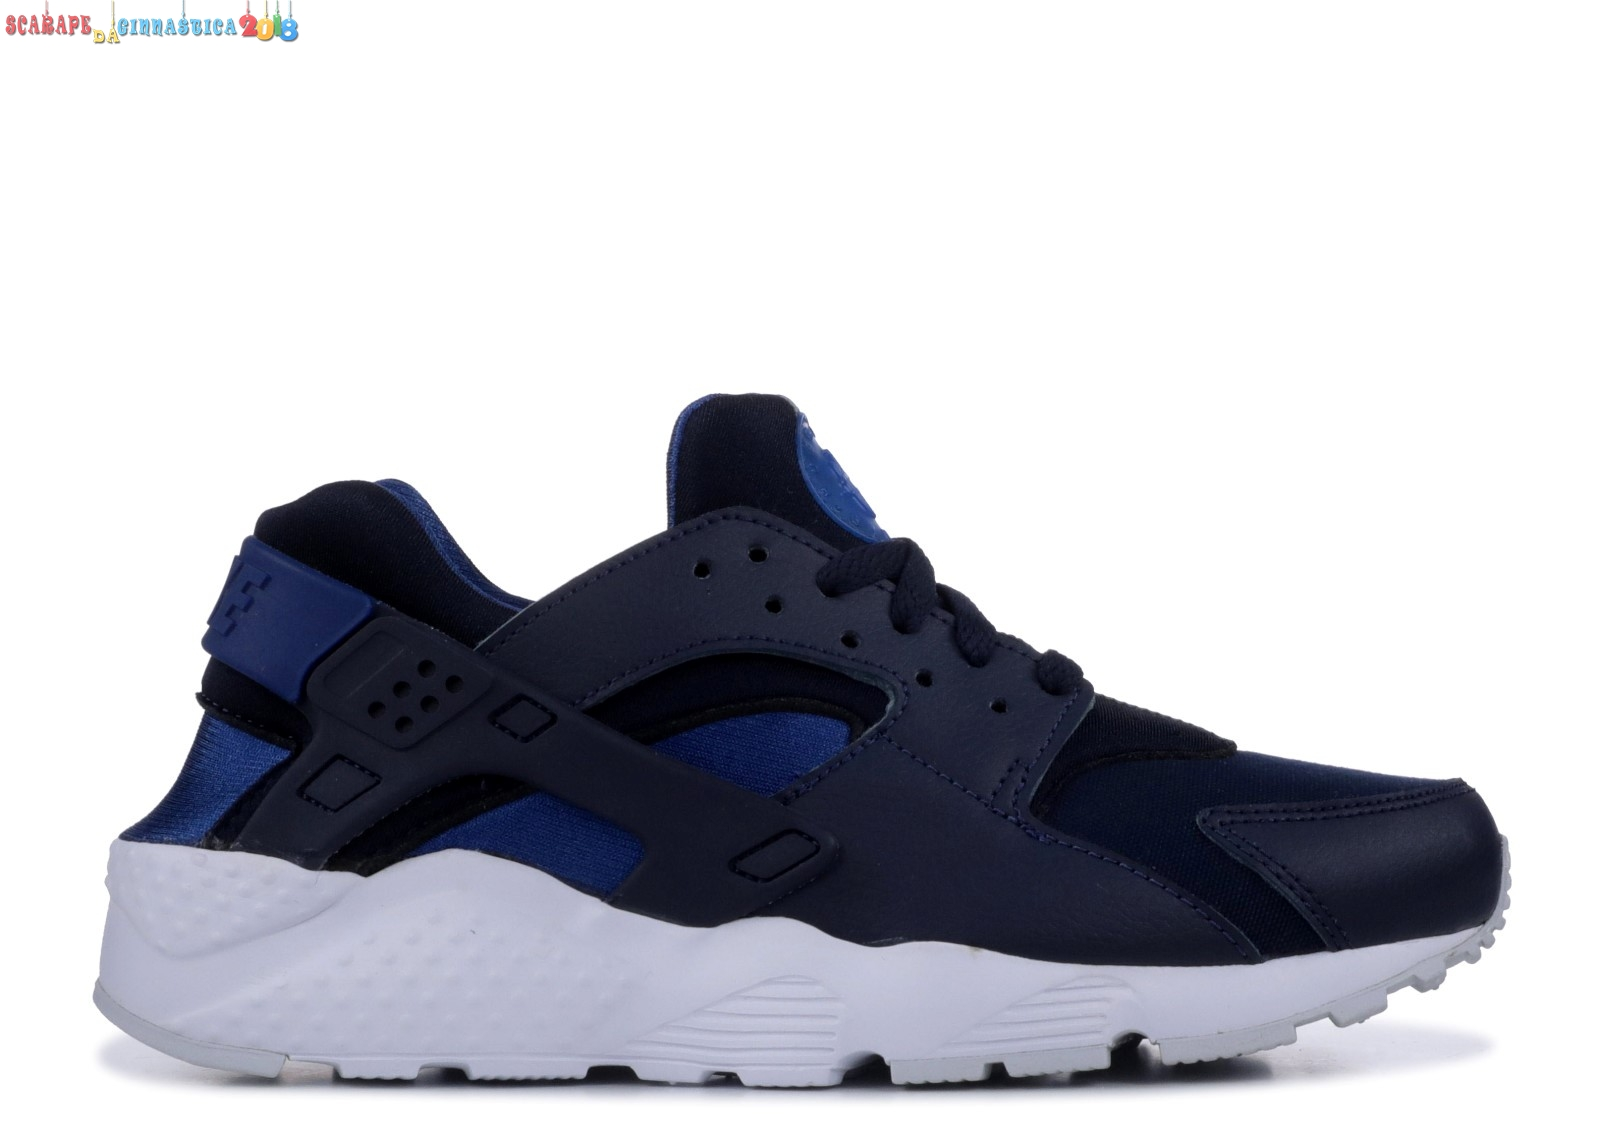 Replica Nike Air Huarache Run (Gs) Navy (654275-414) a Poco Prezzo